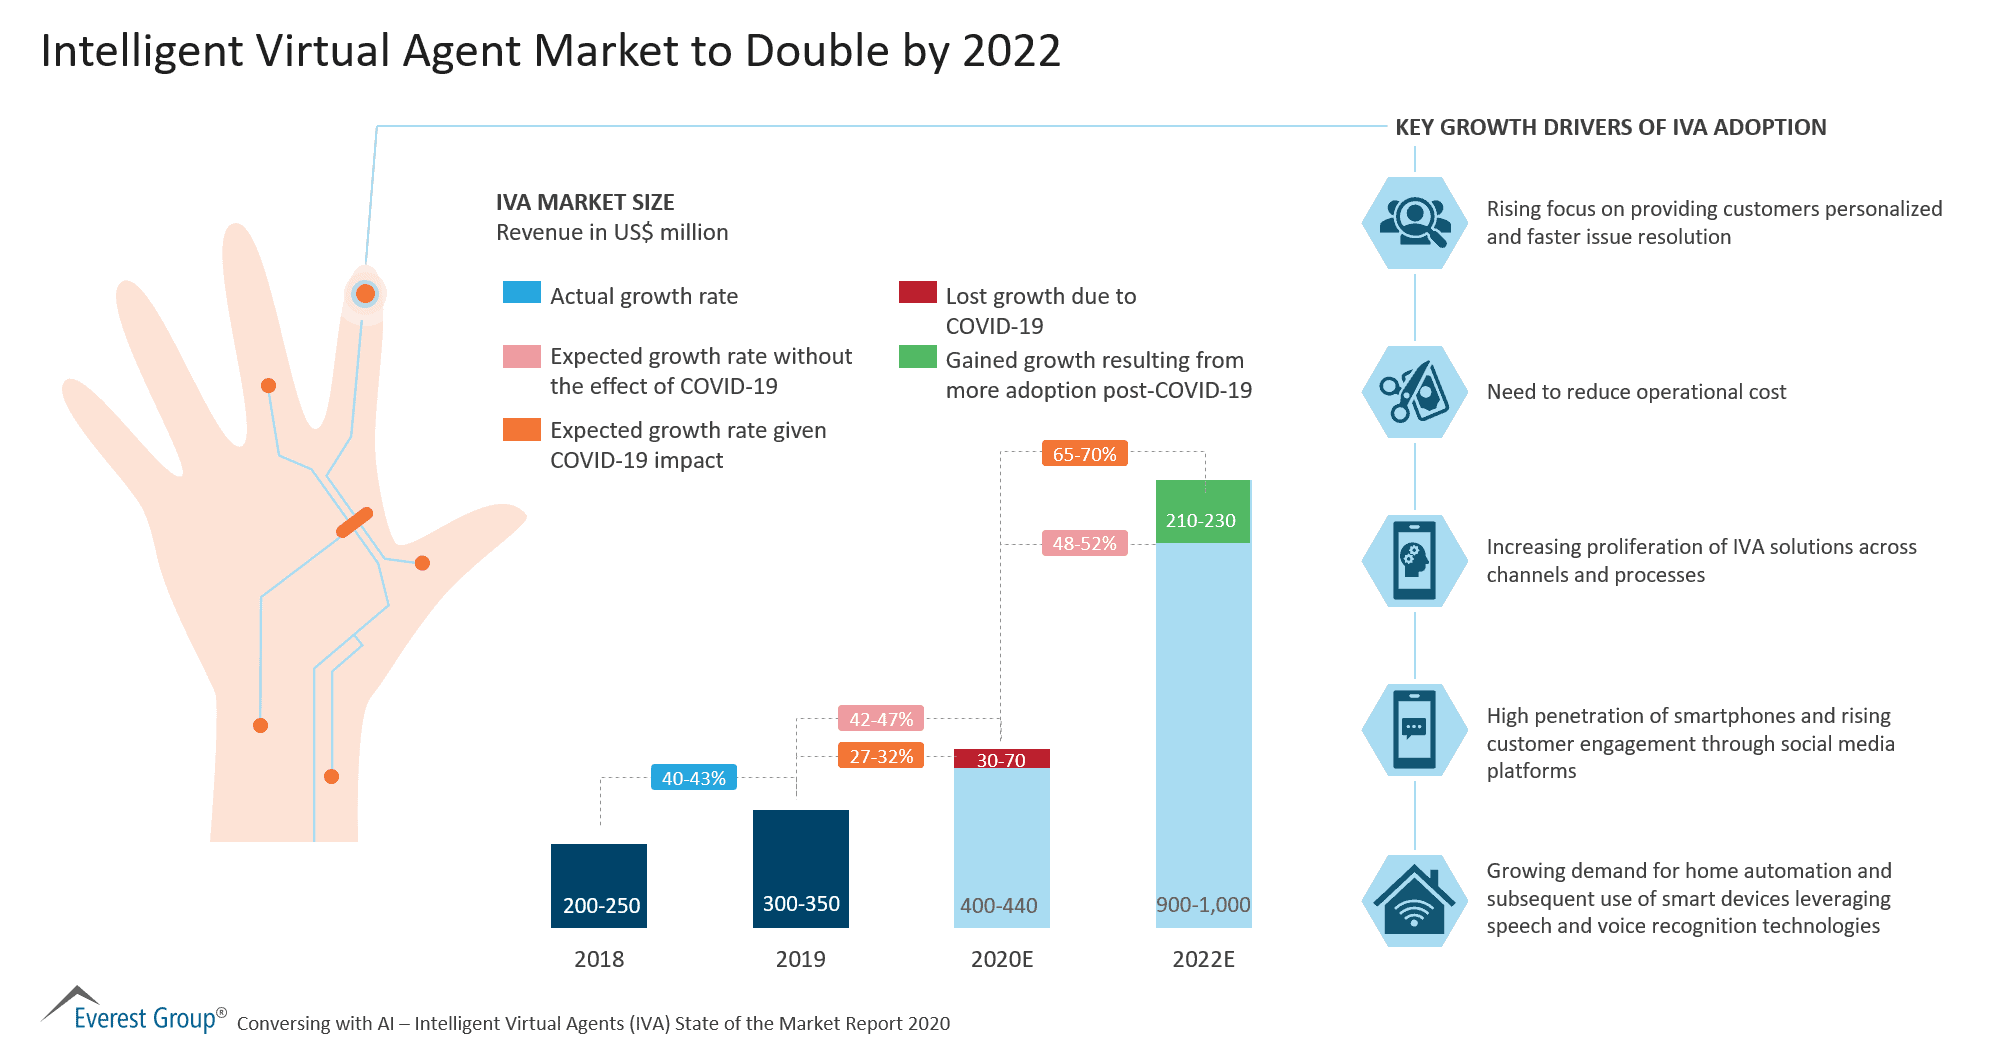 Intelligent Virtual Agents Market to Double by 2022